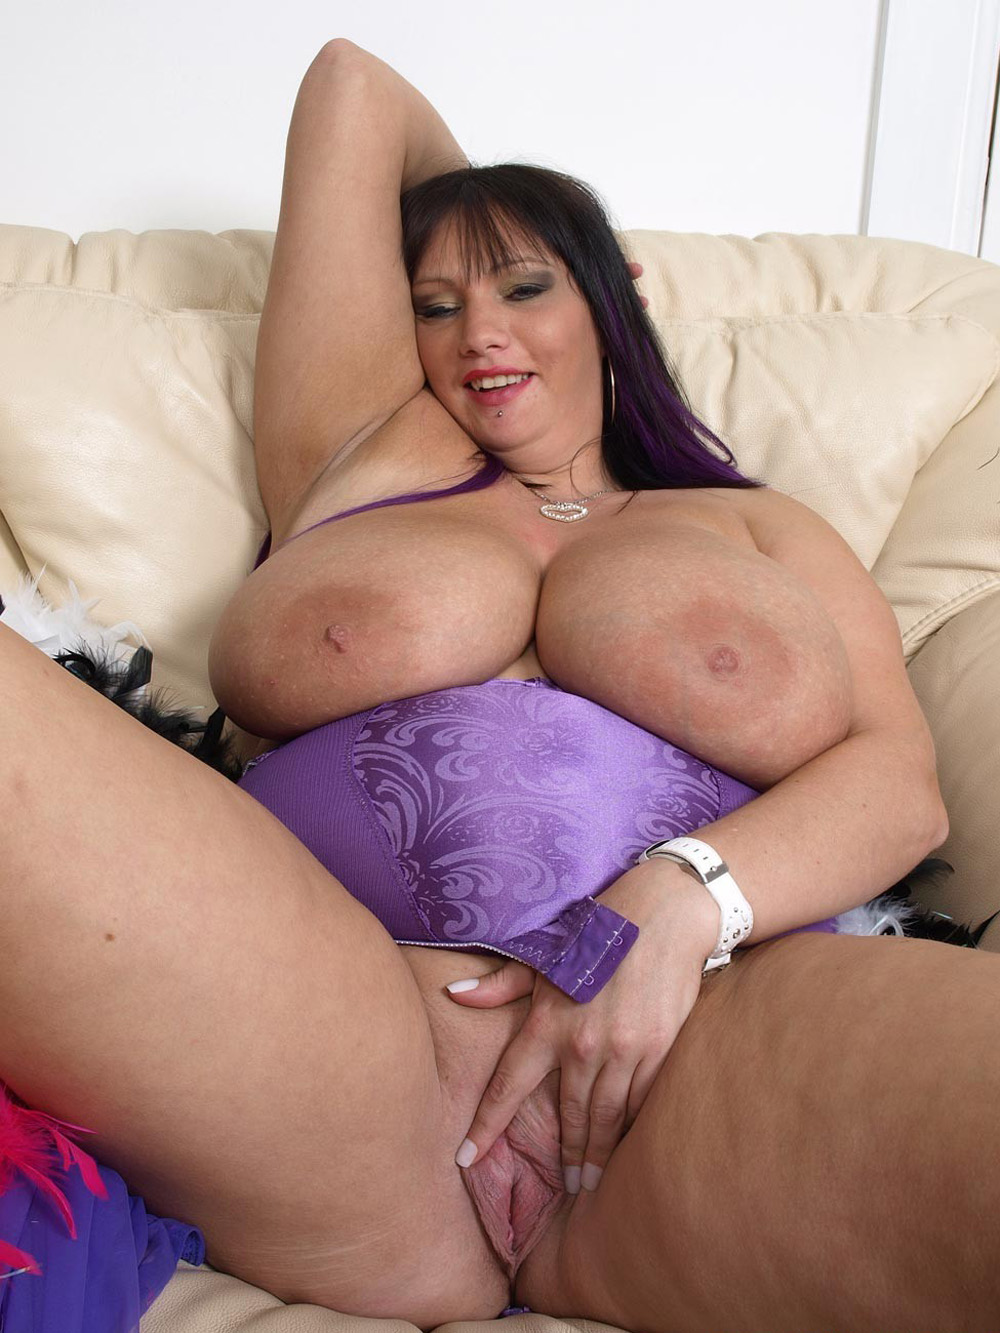 Fat huge sexy girl amazion video pornos photos